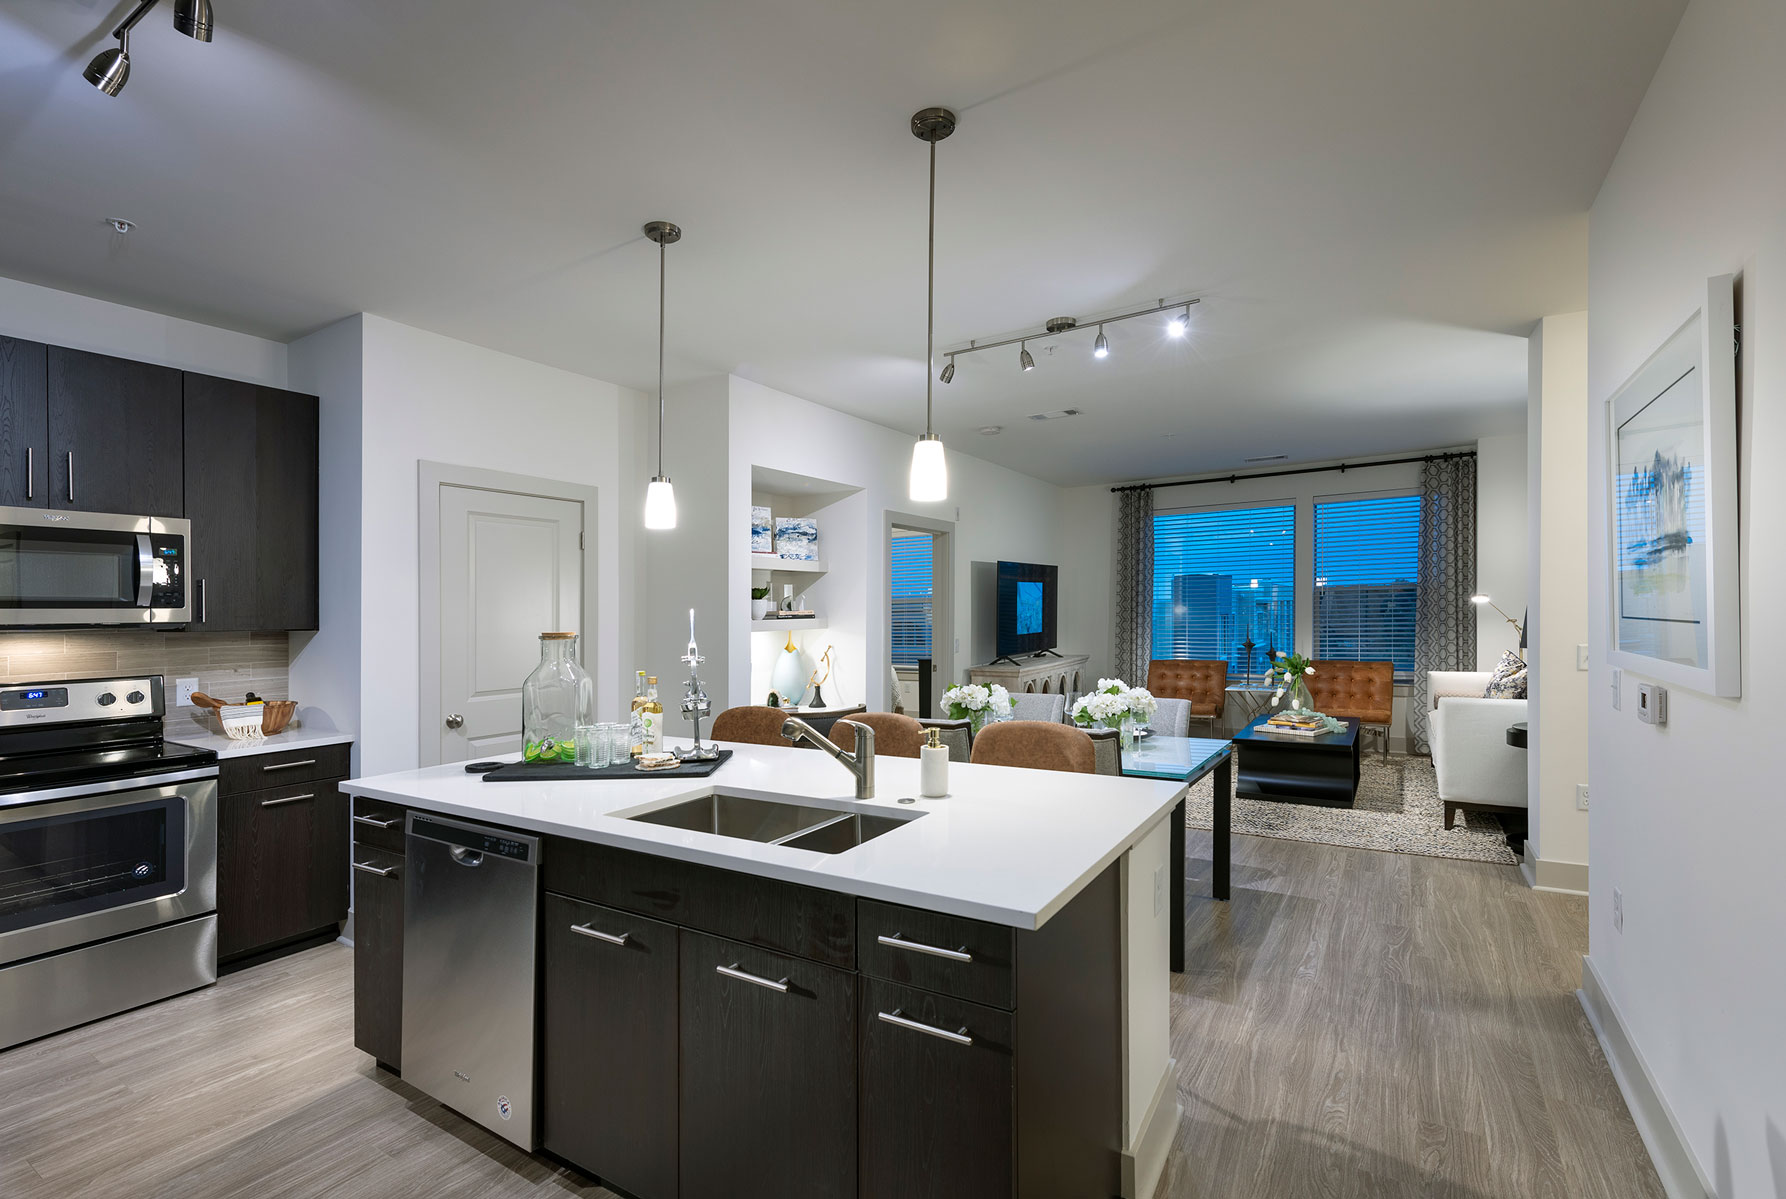 Kitchen/dining/living area with stainless steel appliances, island with sink and bar seating, wood like floor and designer lighting